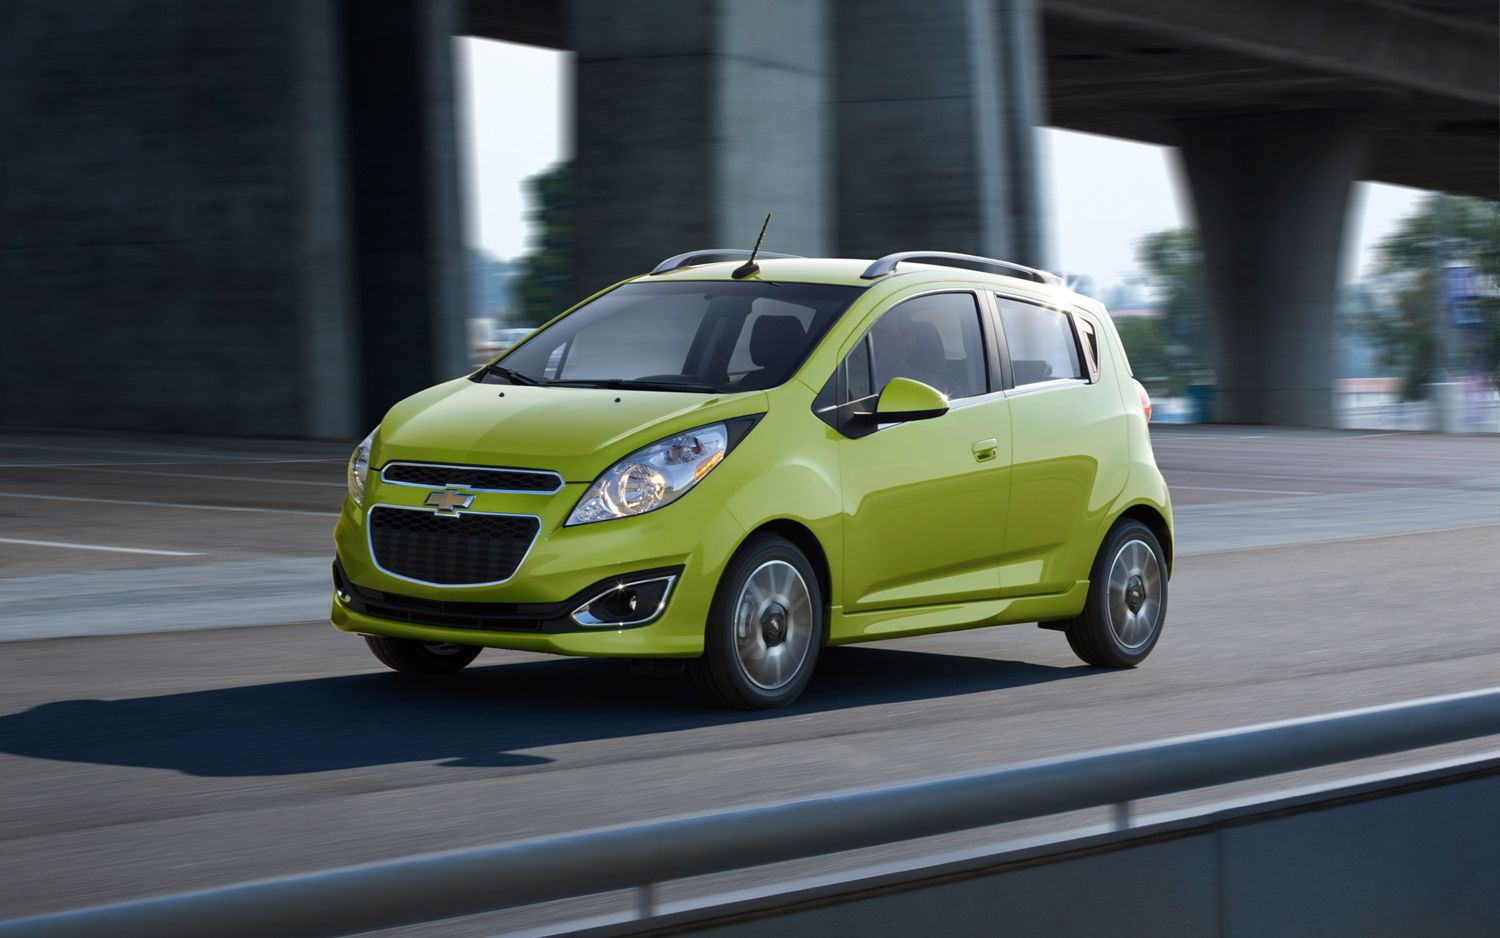 2013 Chevrolet Spark Front Three Quarter In Motion 21